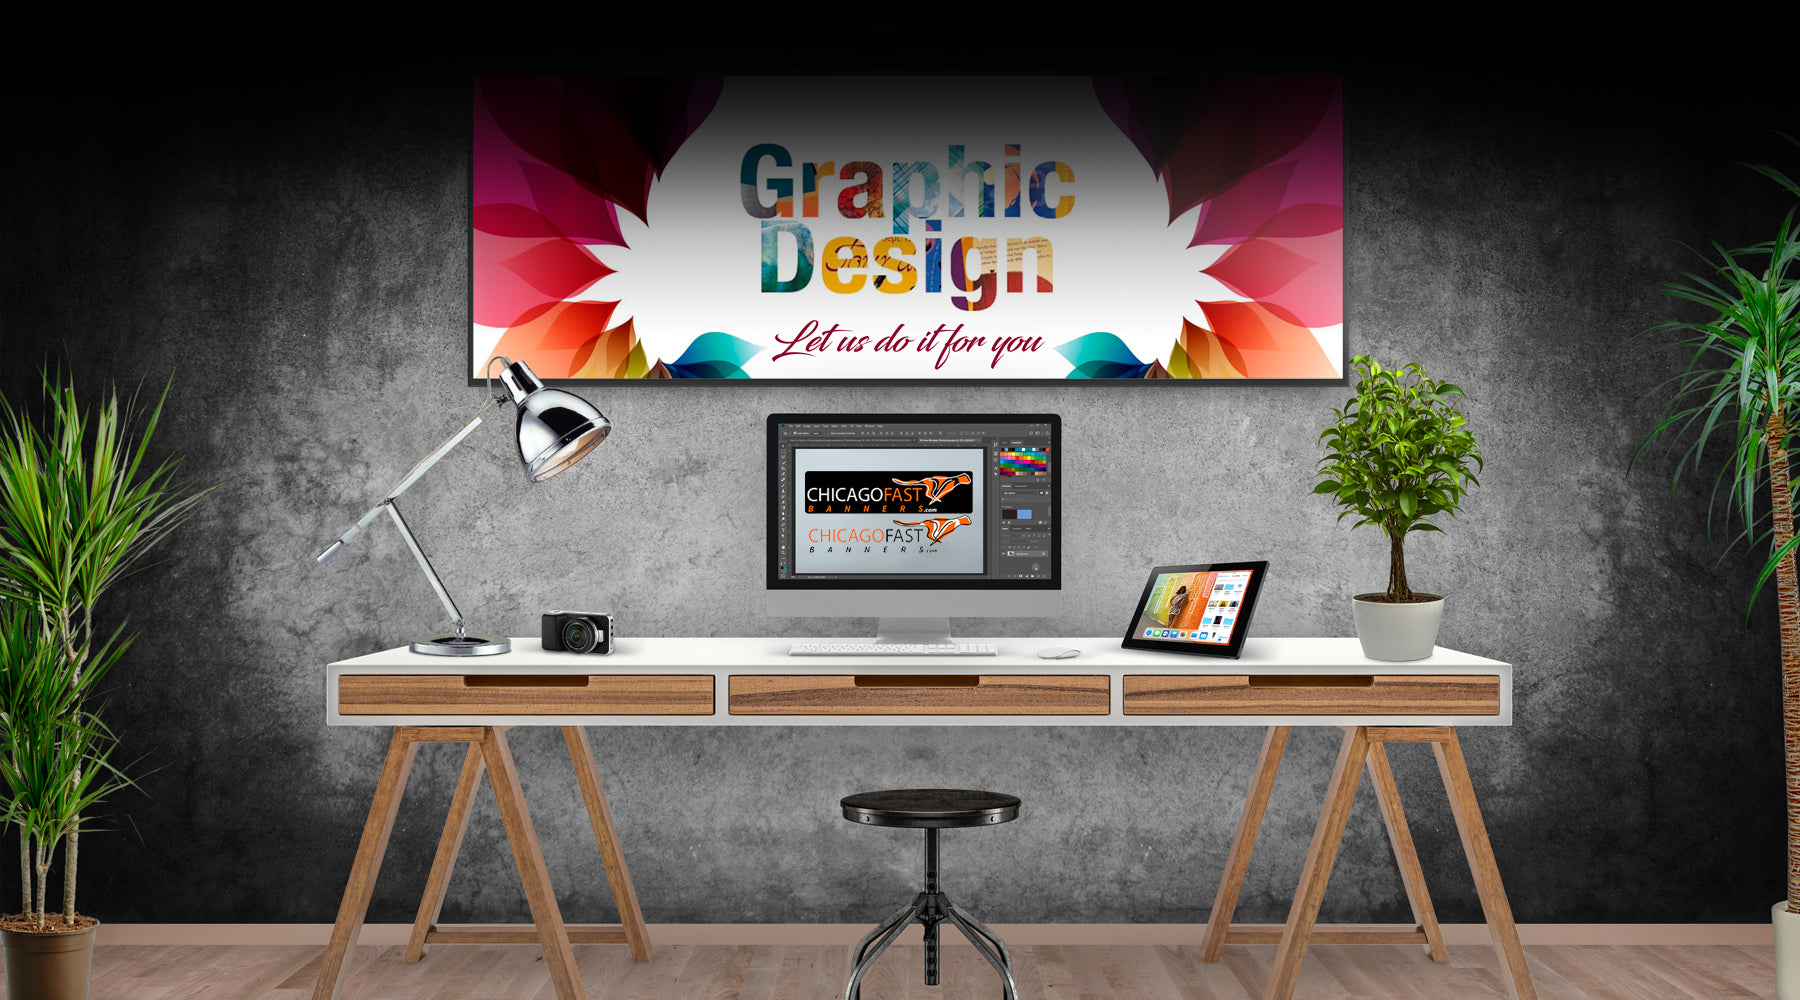 Graphic Design - Let us do it for you!